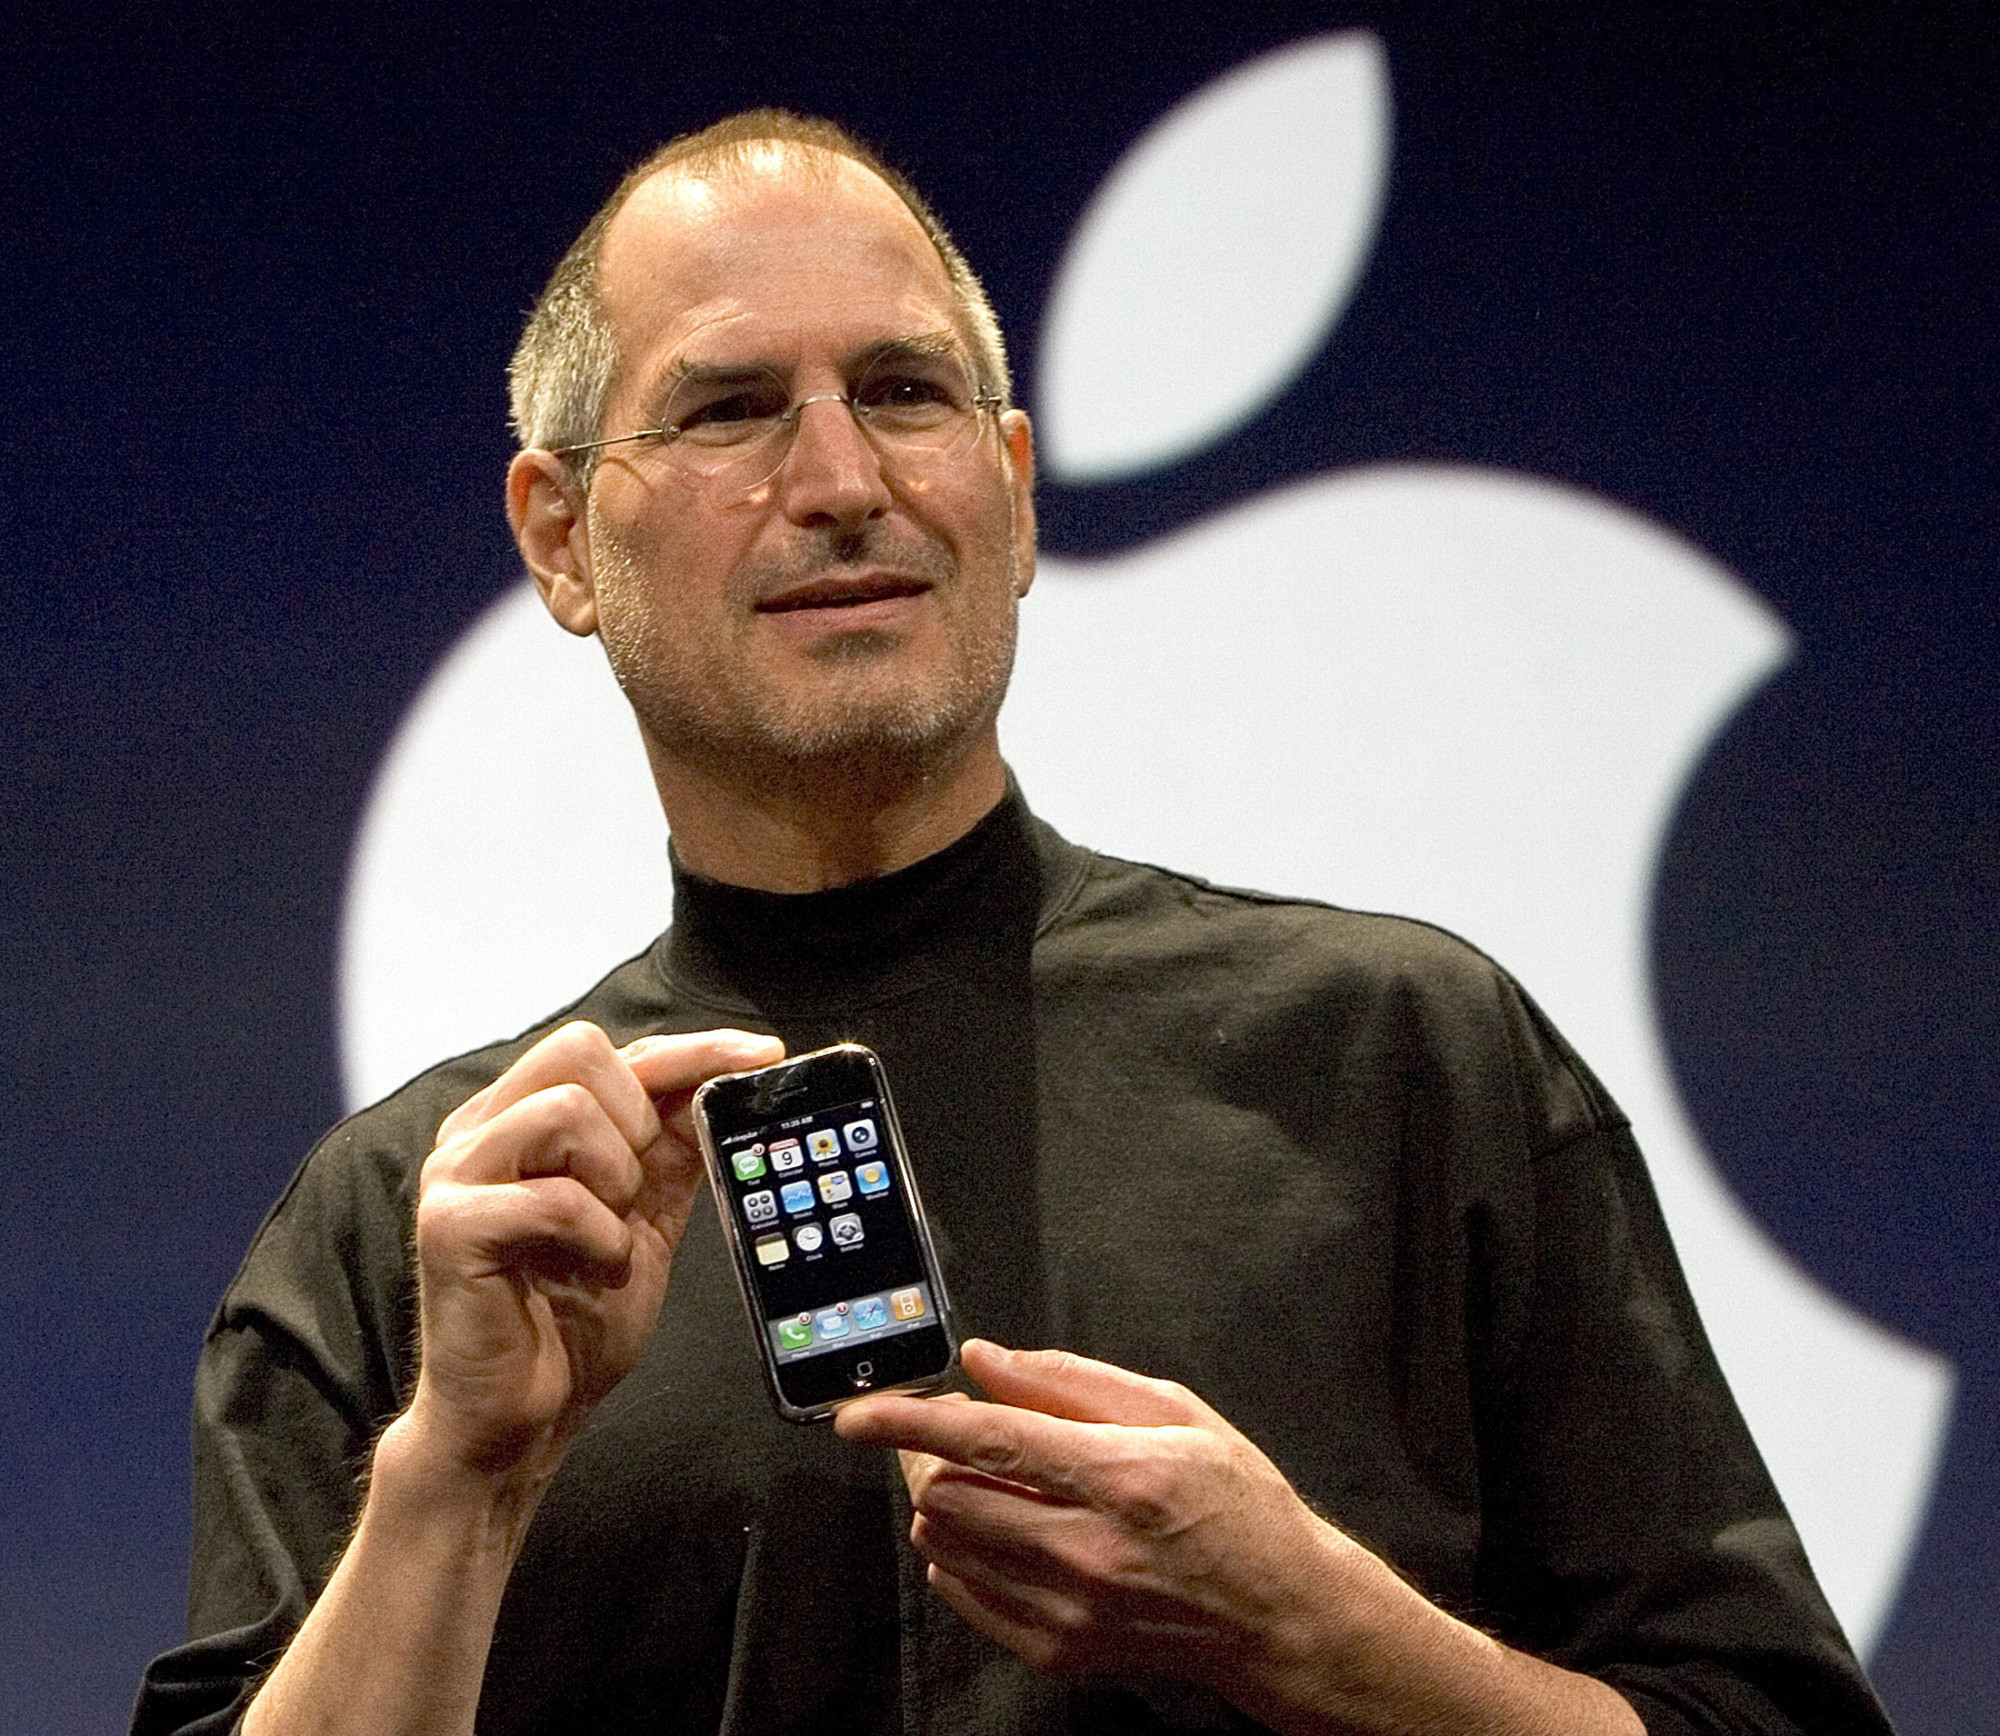 Here's how much (or little) Apple's iPhone has changed through the years